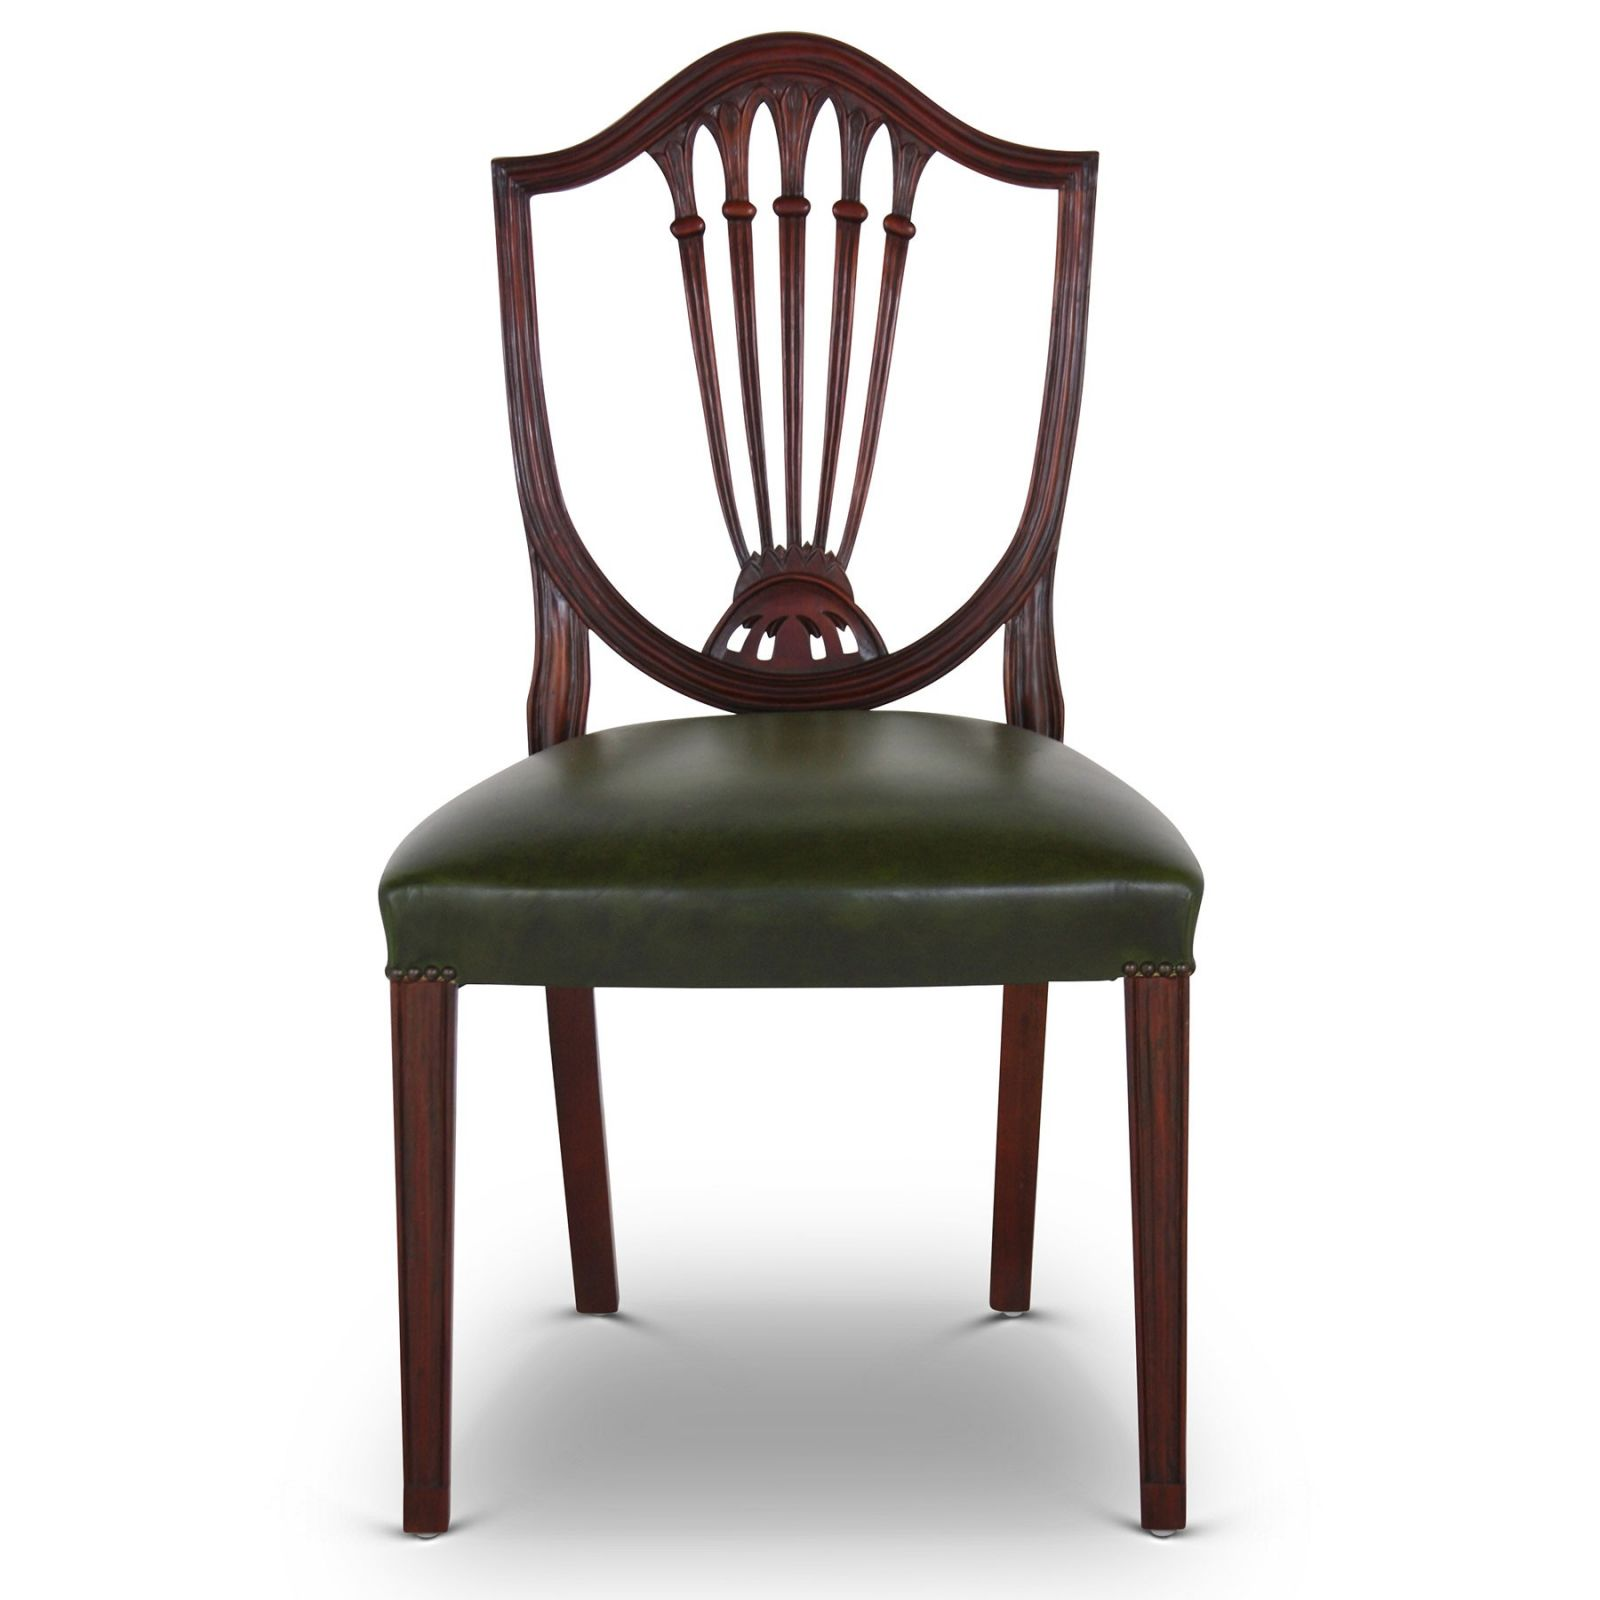 Hepplewhite style mahogany dining chair with green leather seat